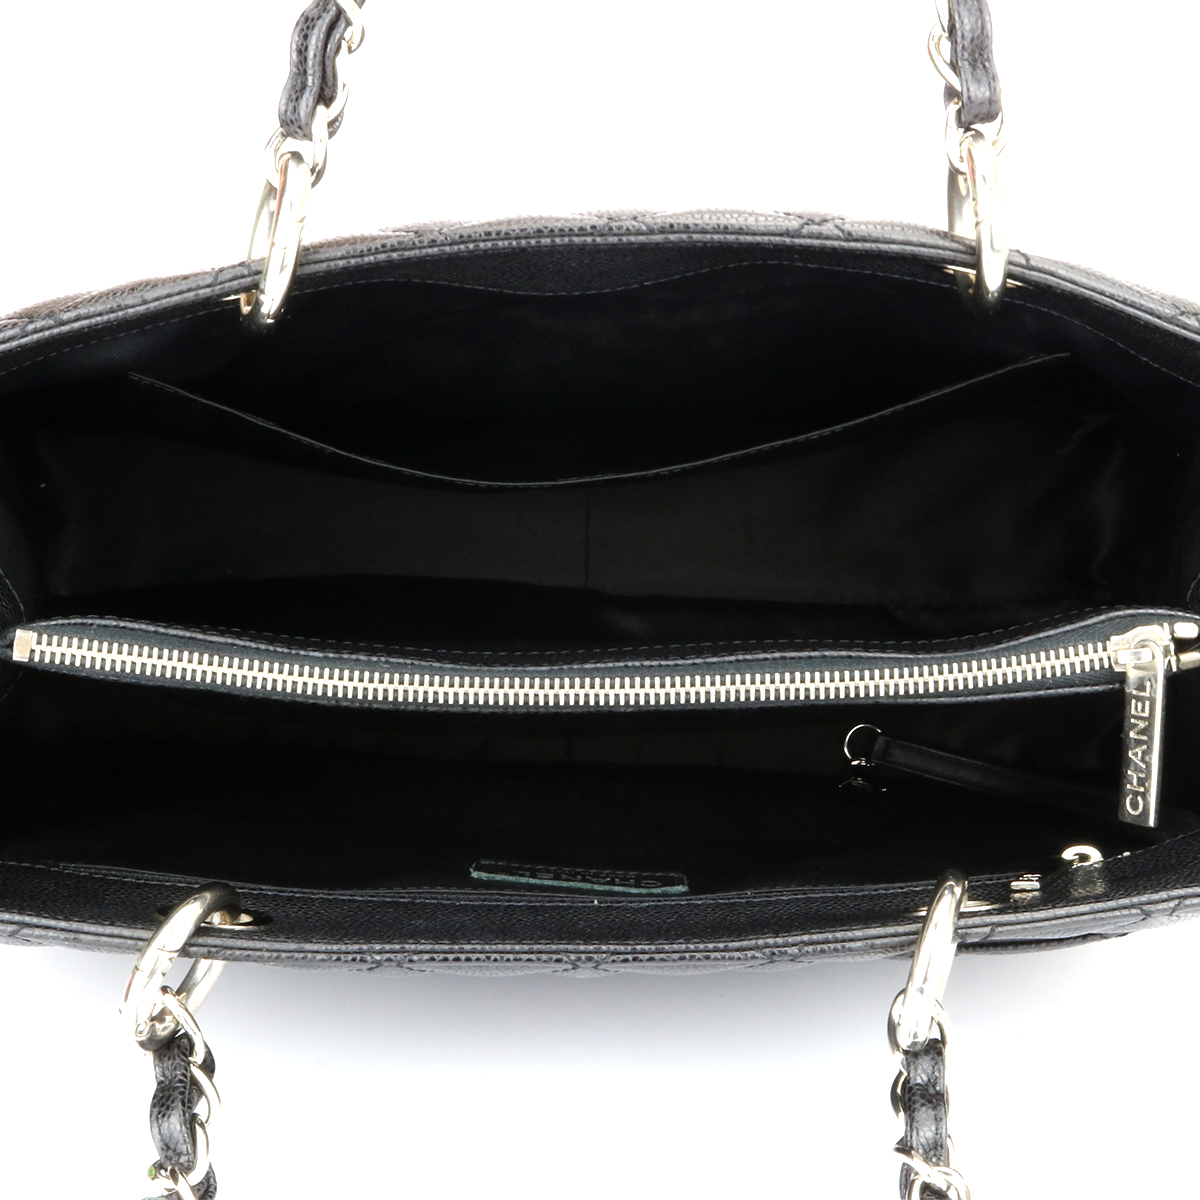 c0d6023c7086fc Chanel Caviar Shopping Bag 2015 | Stanford Center for Opportunity ...